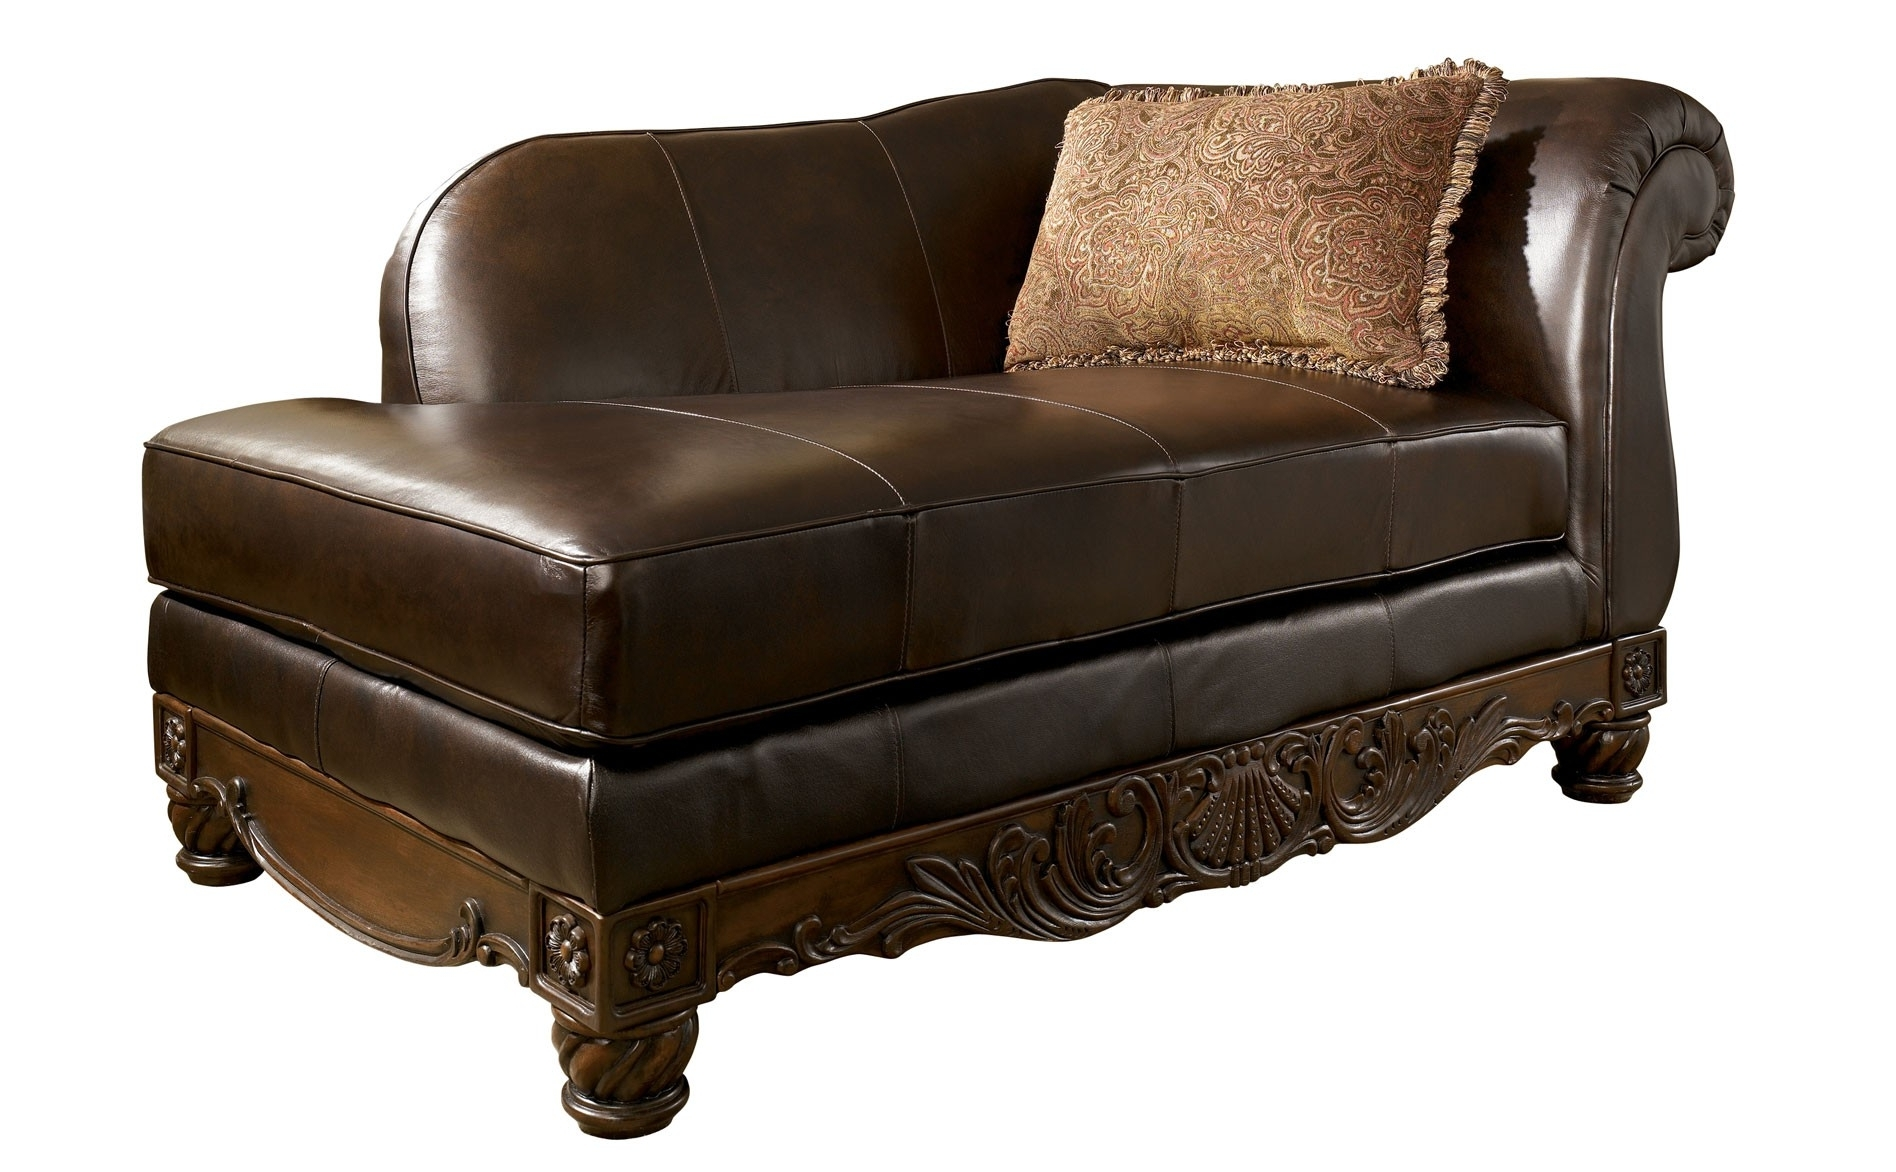 Preferred Brown Leather Chaises Within Rustic Chocolate Leather Chaise Lounge Chair With Single Arm And (View 12 of 15)